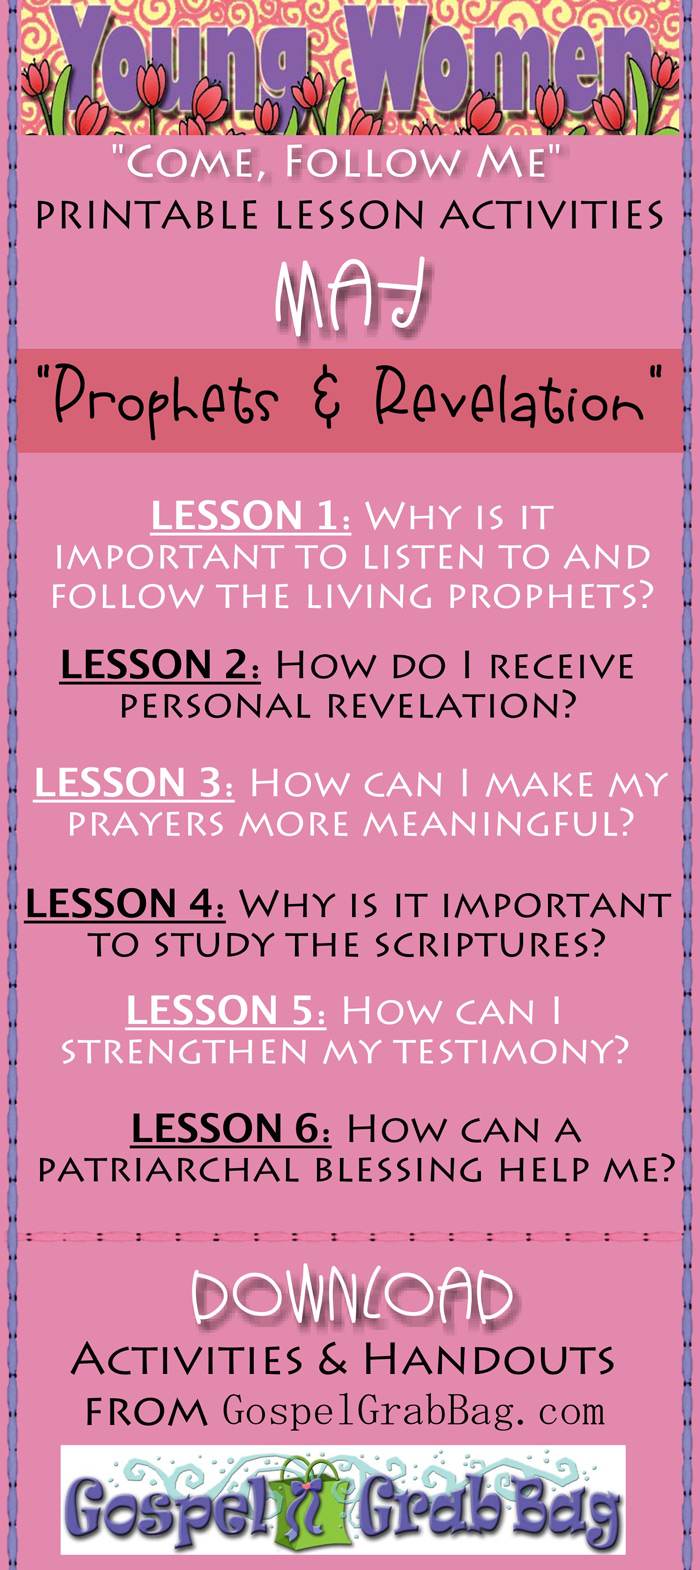 """Women """"Come Follow Me"""" MAY – Theme: """"Prophets and Revelation"""" - Lesson-match presentations, activities and handouts for youth leaders to add to and enhance lessons to DOWNLOAD from gospelgrabbag.com"""